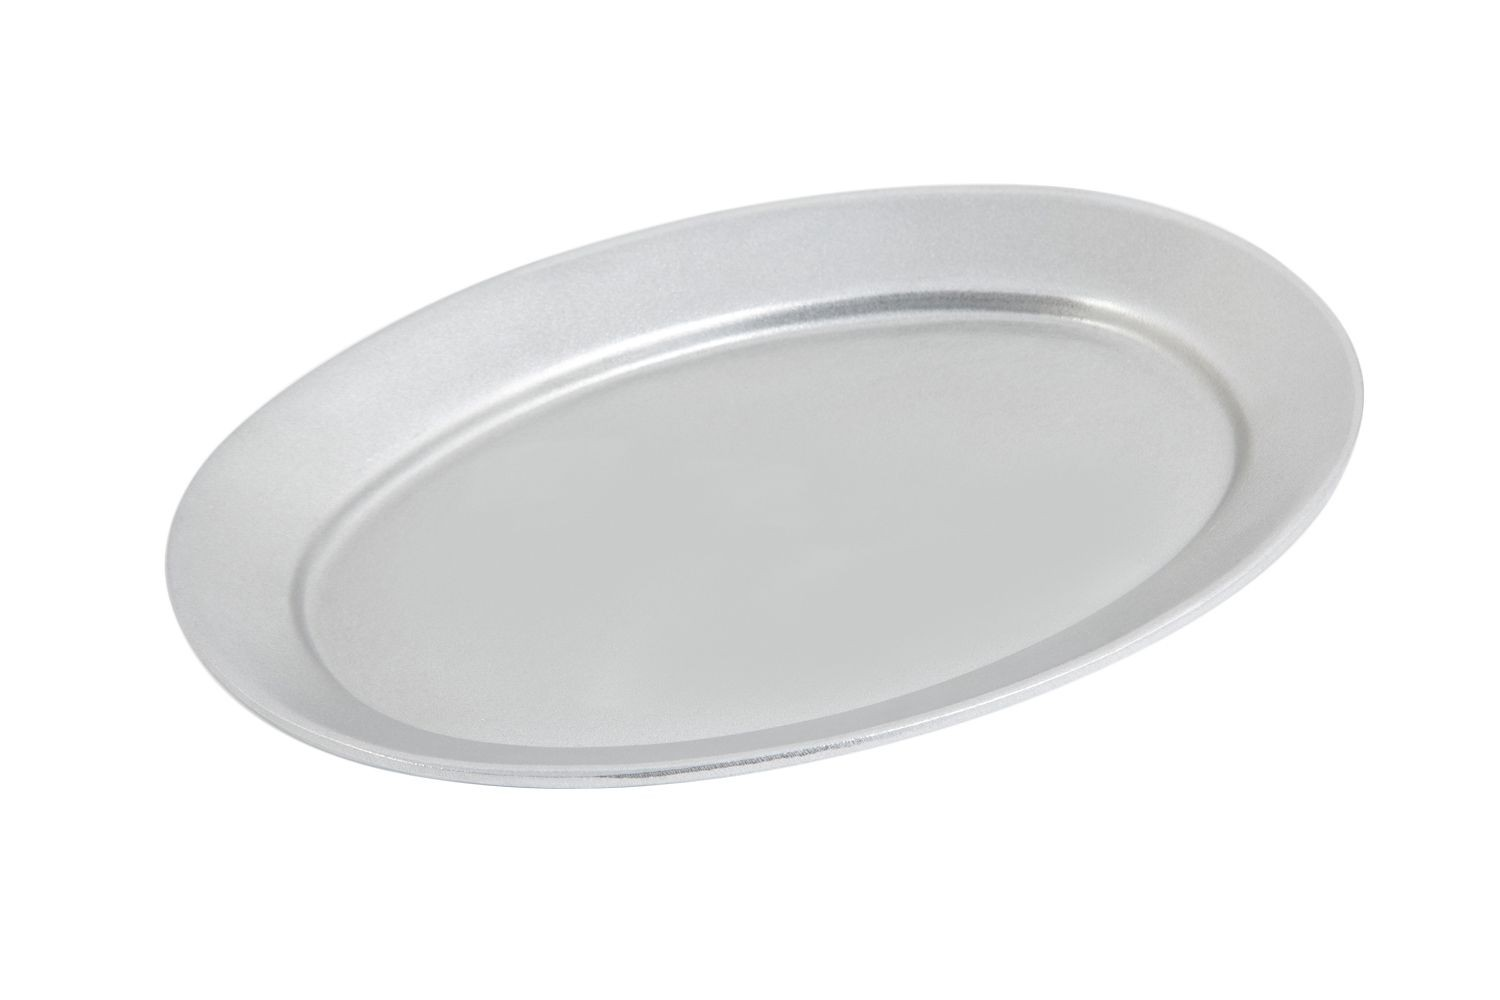 "Bon Chef 2015P Oval Platter, Pewter Glo 8 1/4"" x 12"", Set of 3"